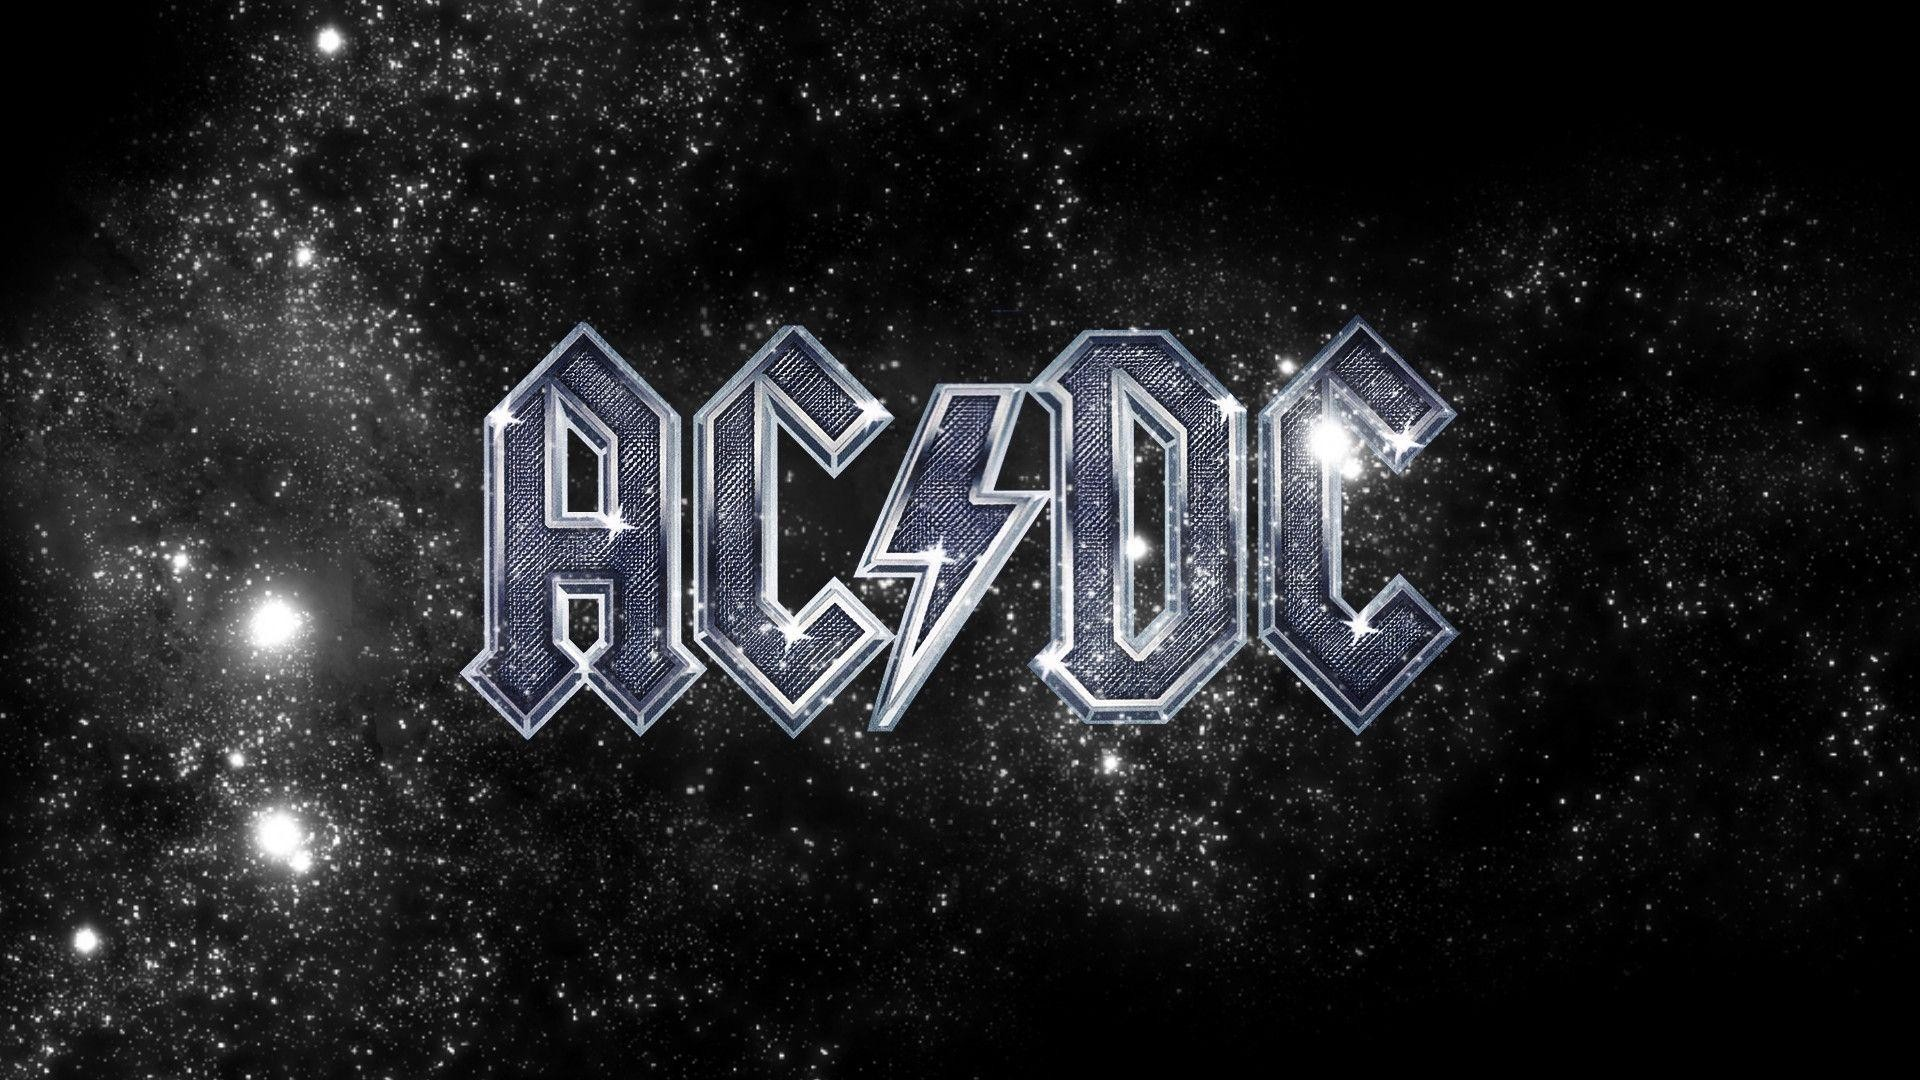 Acdc Wallpaper Wallpapertag